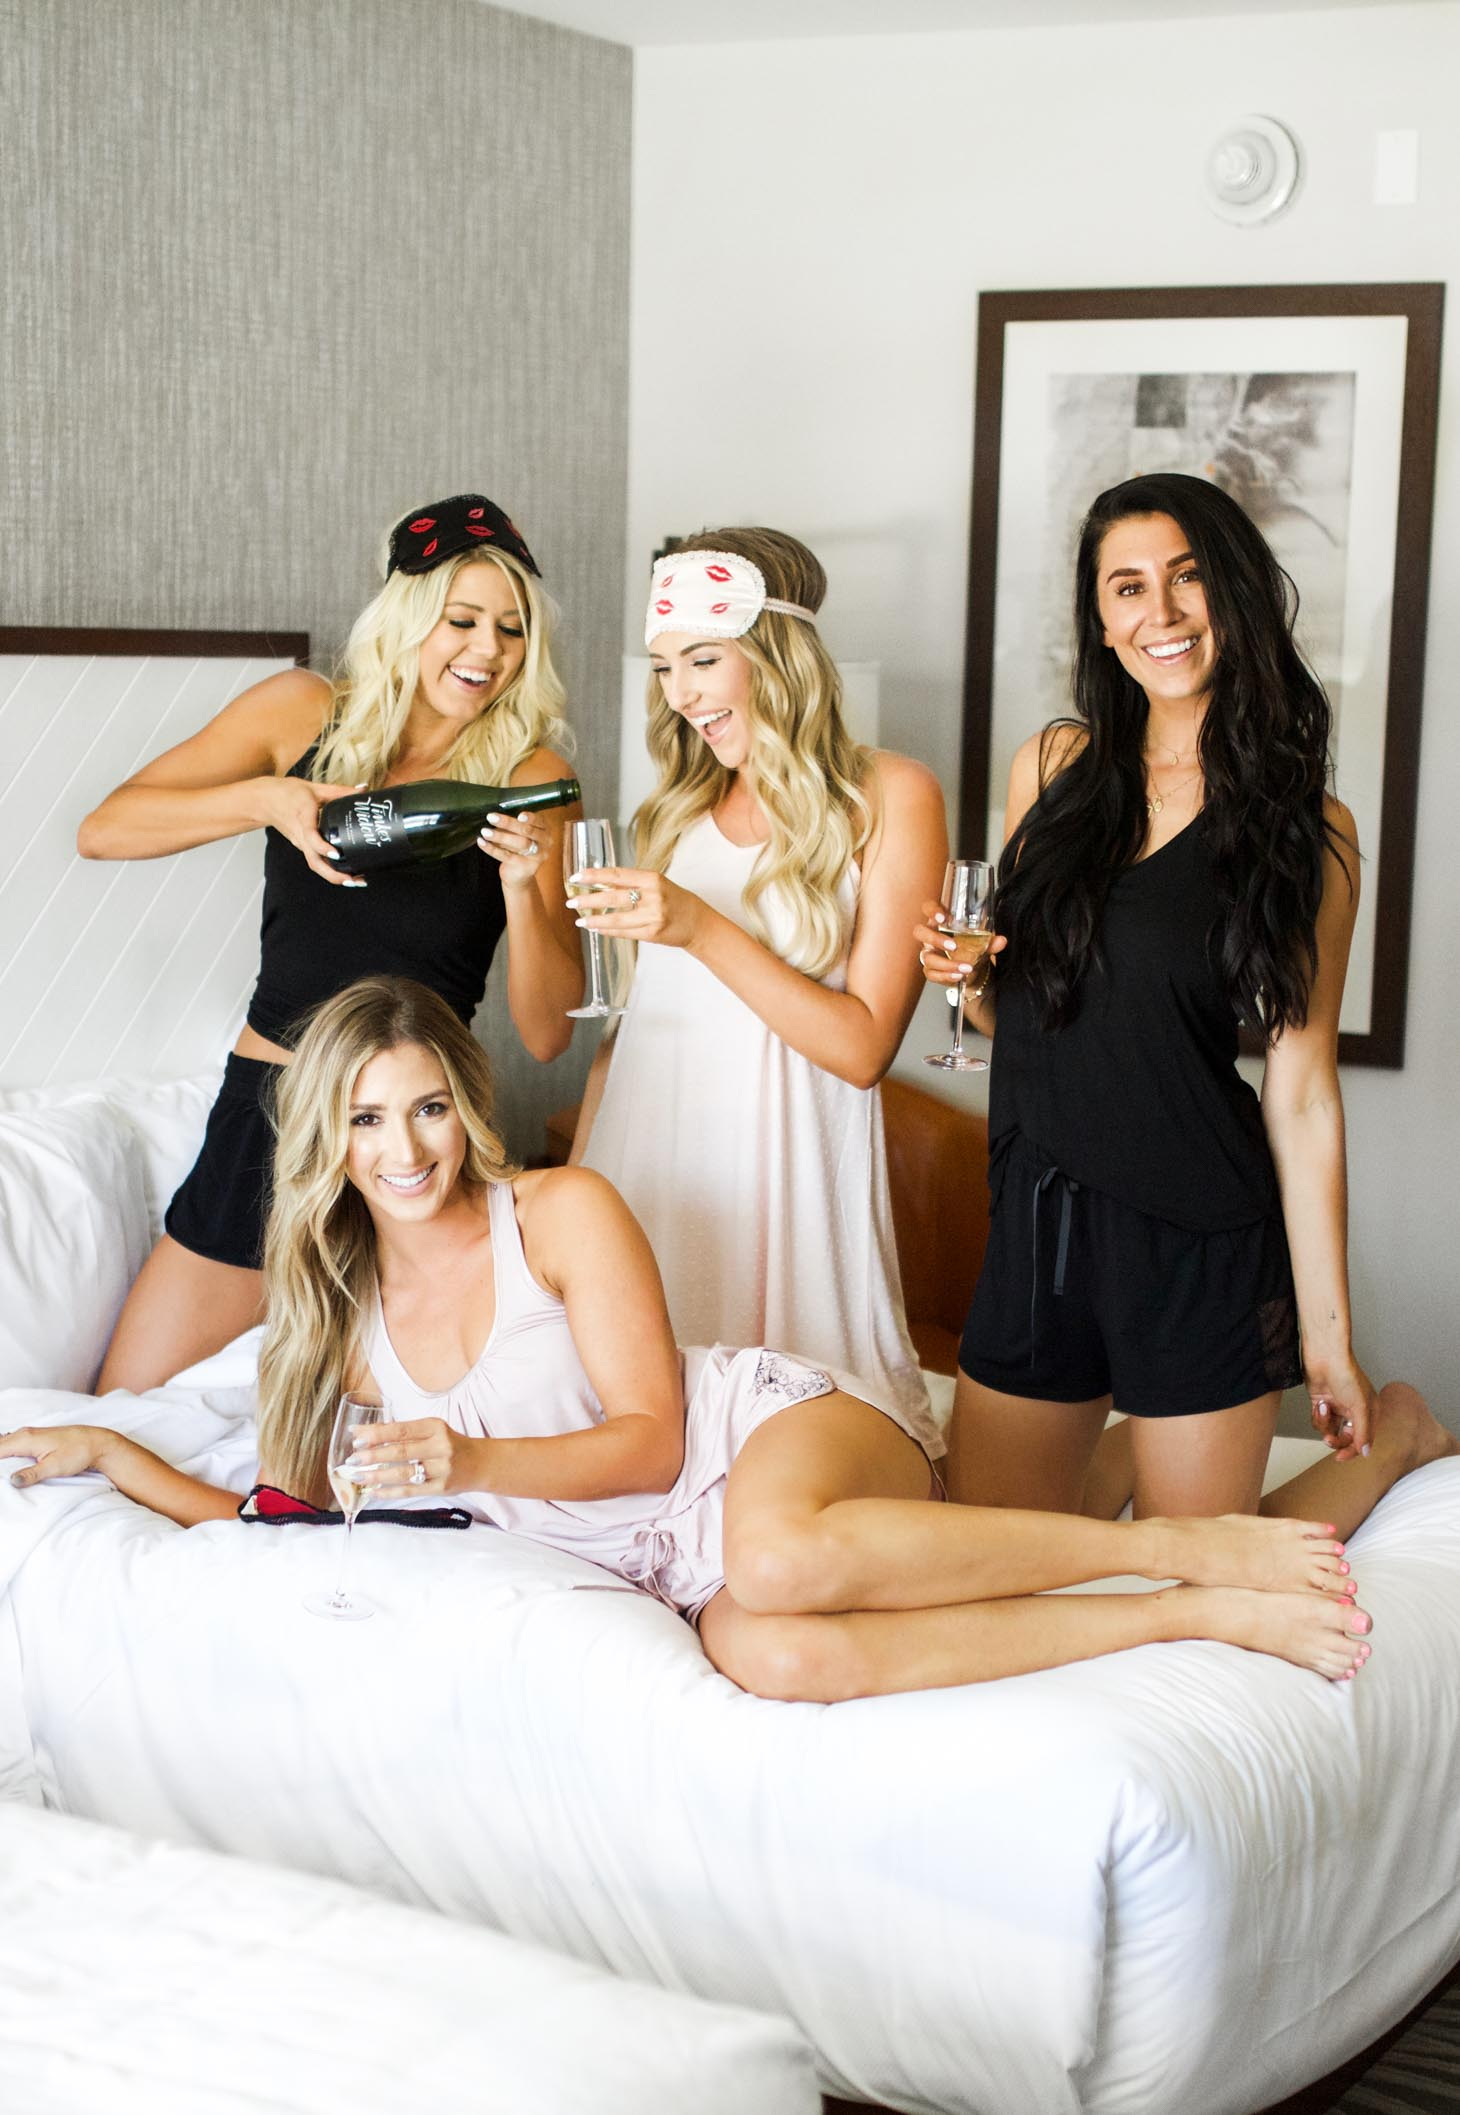 Erin Elizabeth of Wink and a Twirl and blogger besties share the cutest pajamas from Fleur'T during their staycation at the Hotel Adeline